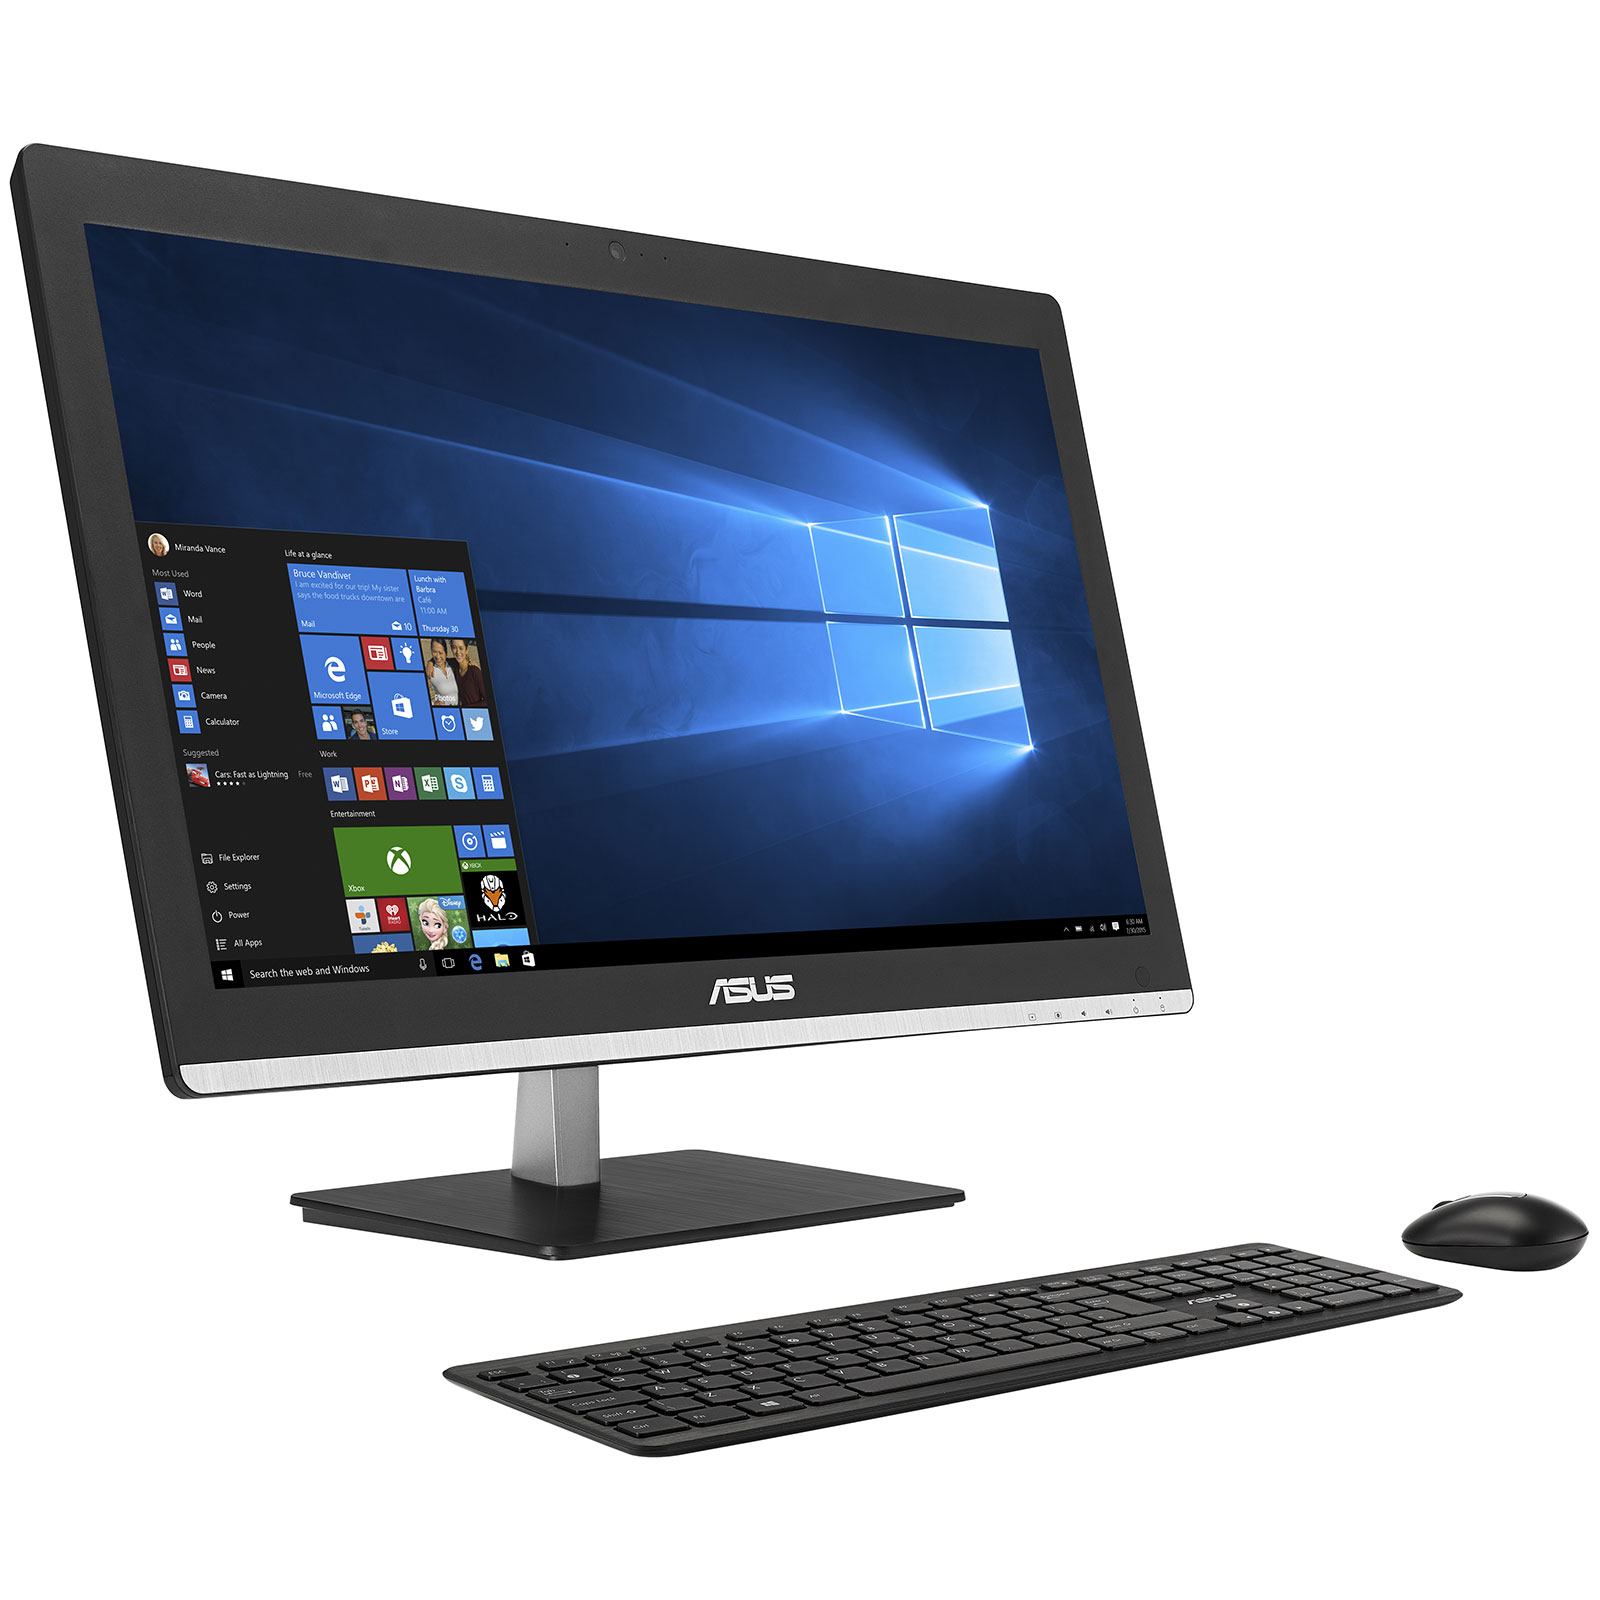 asus all in one pc et2231ink bc018x et2231ink bc018x achat vente pc de bureau sur. Black Bedroom Furniture Sets. Home Design Ideas